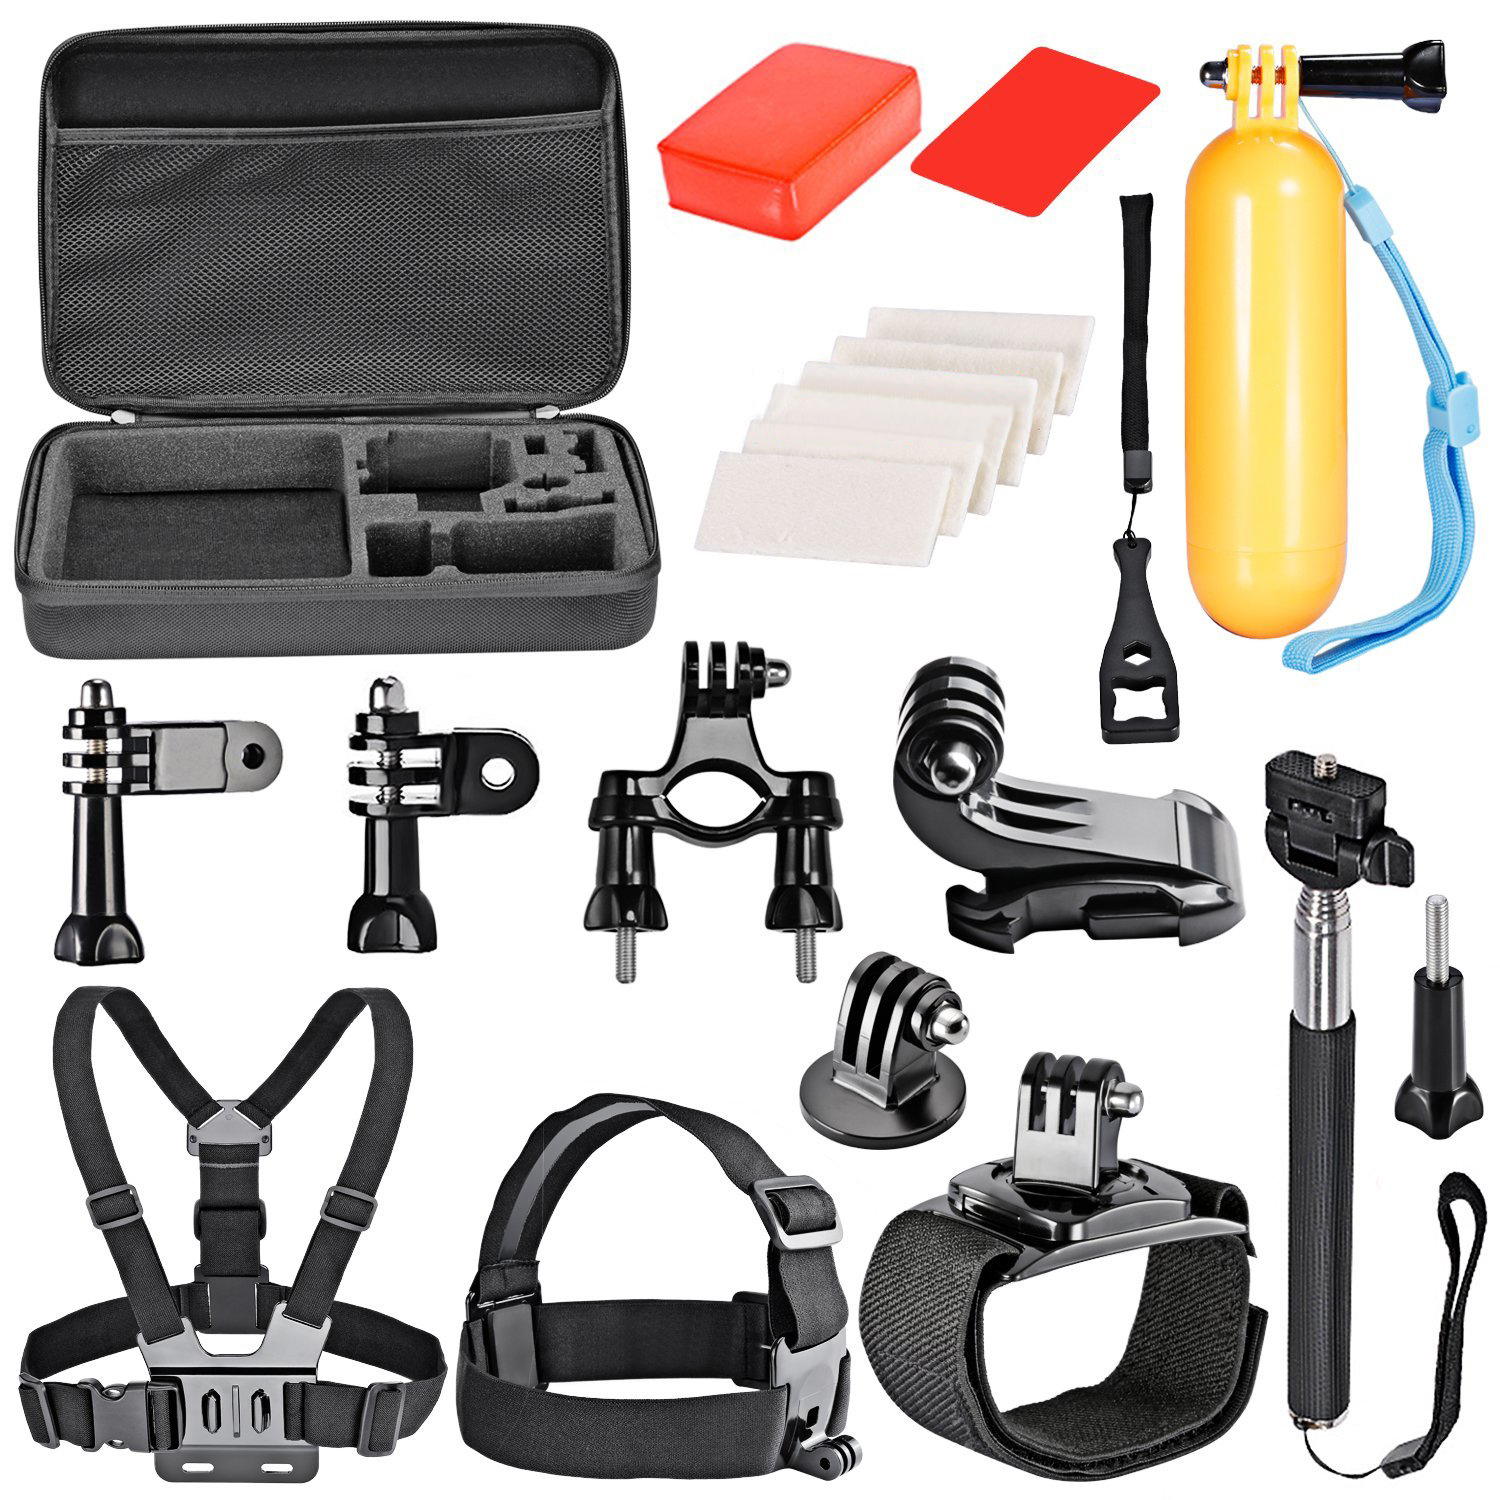 CES-18-In-1 Sport Accessory Kit for GoPro Hero4 Session Hero series for Xiaomi Yi in Skiing Climbing Bike Camping Diving and CES